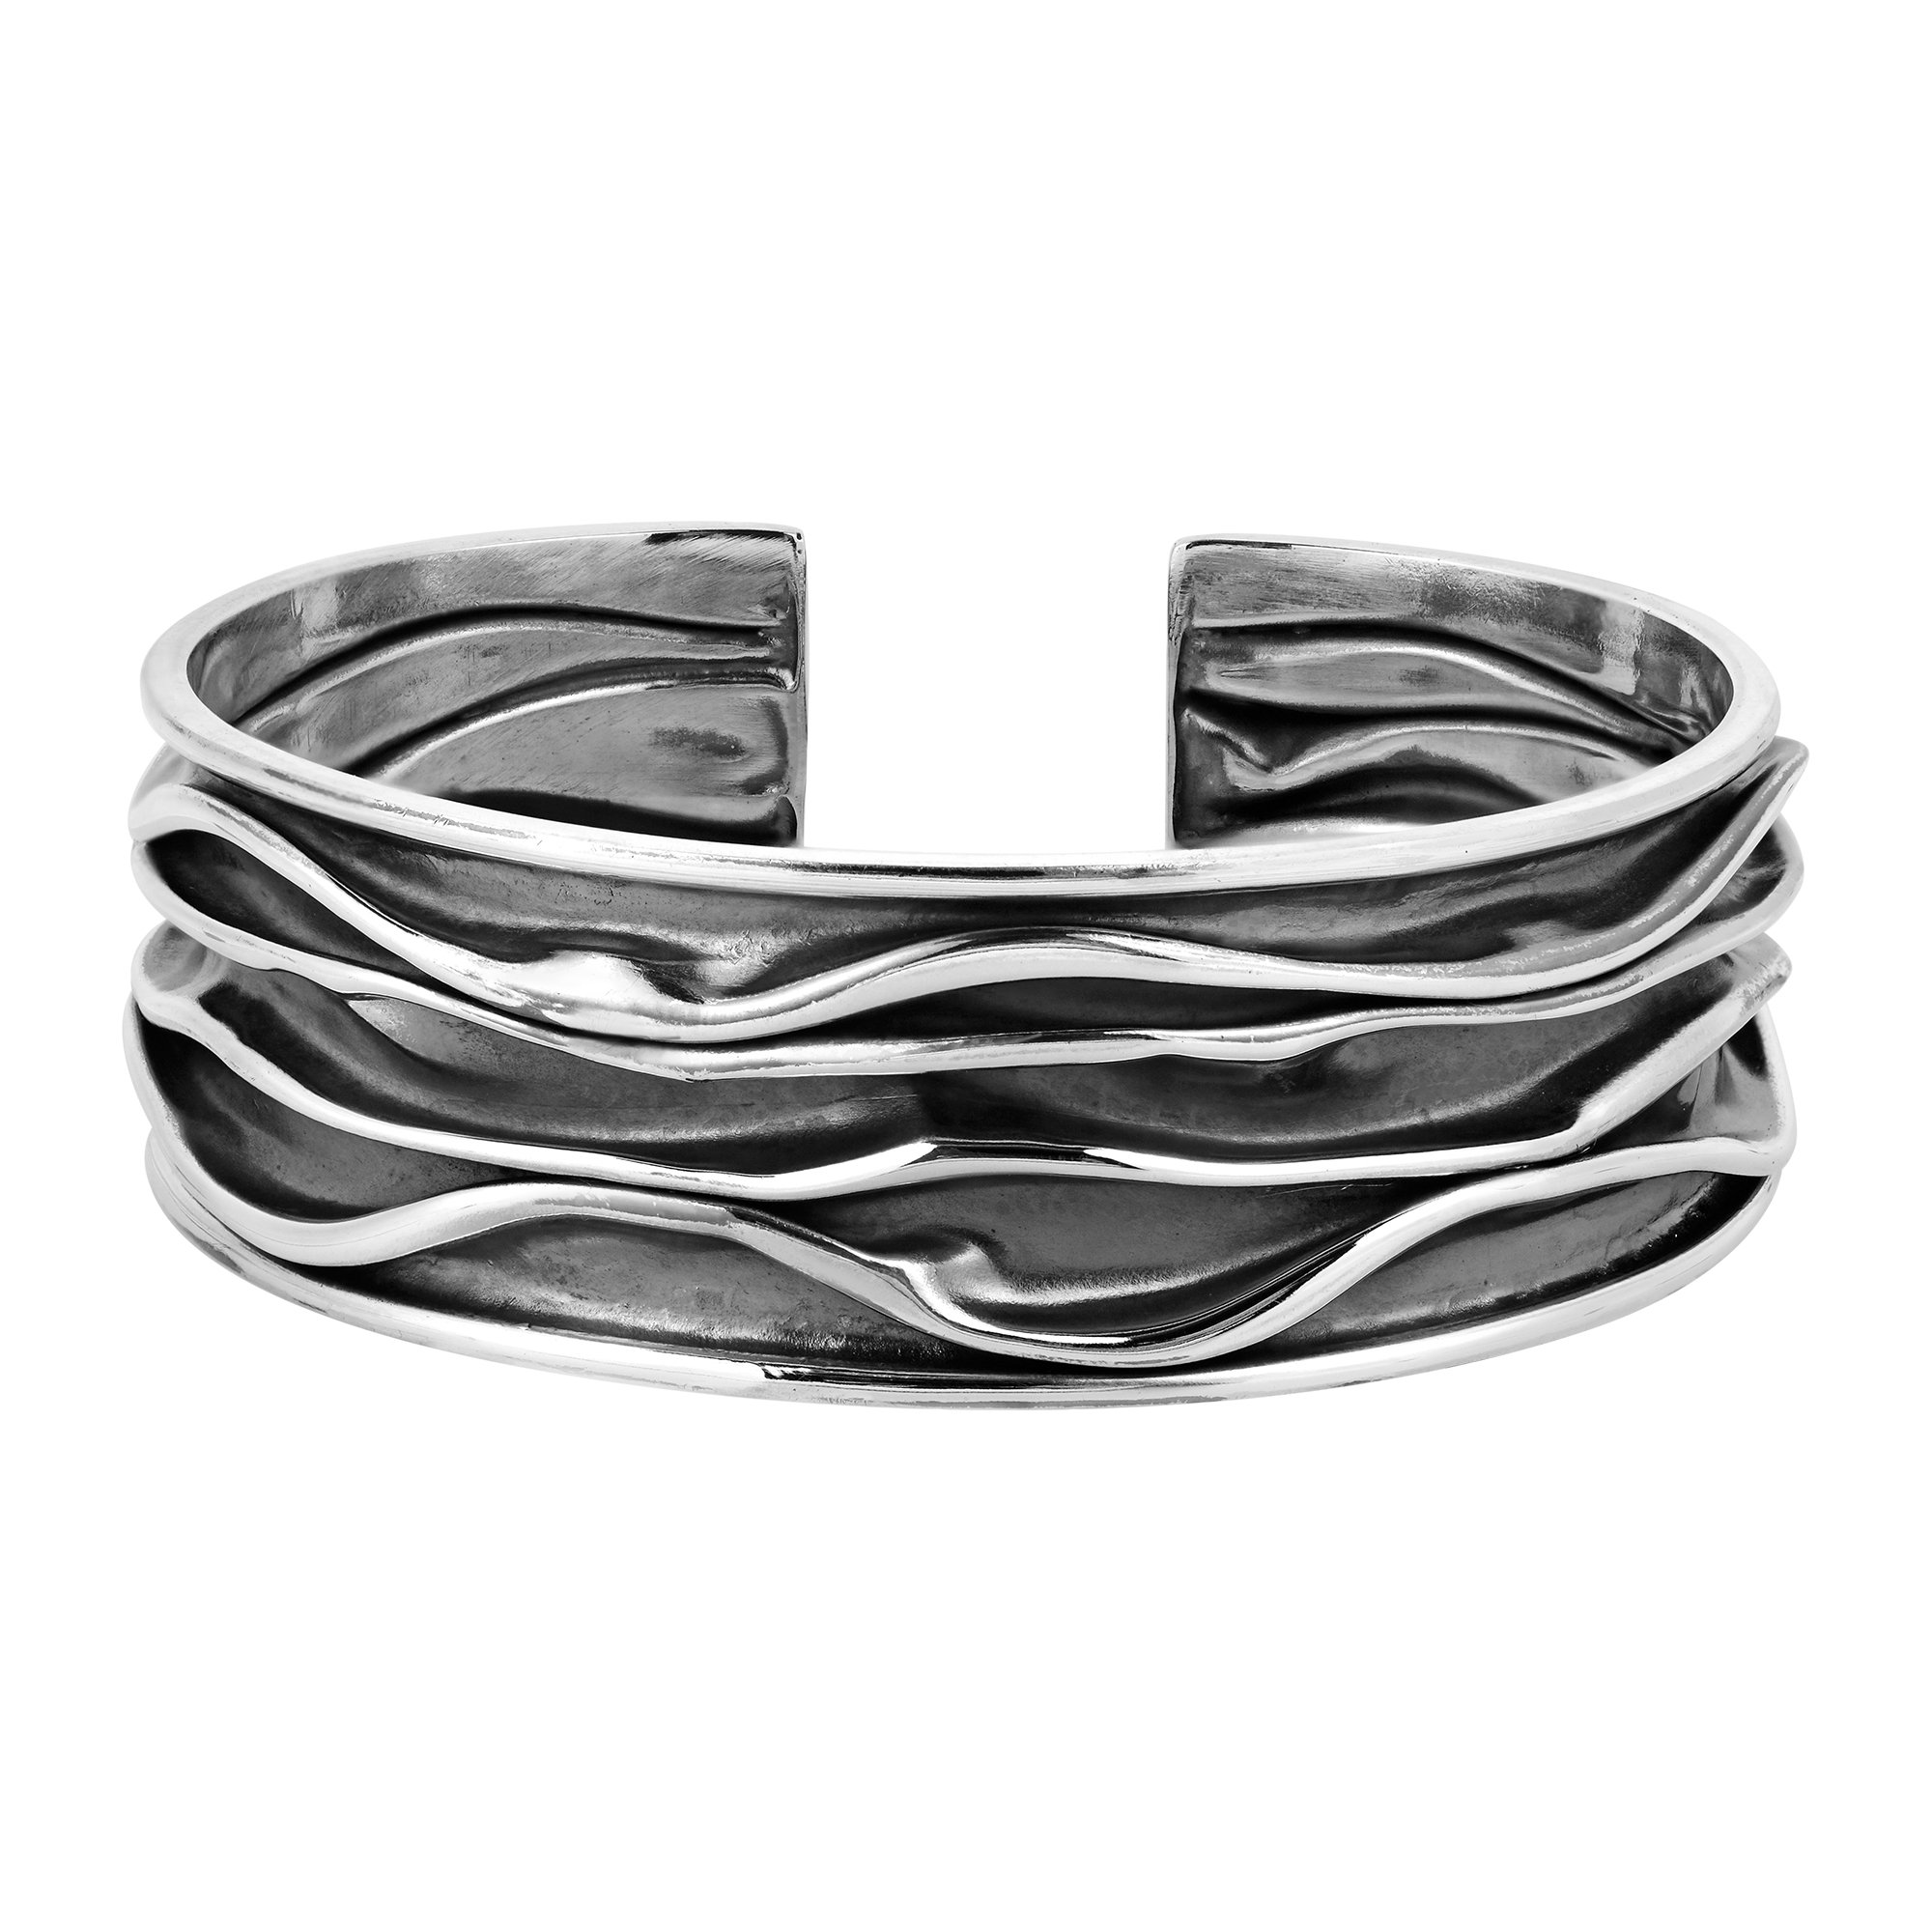 Handcrafted Two Tone Oxidized Ocean Wave .925 Sterling Silver Cuff Bracelet